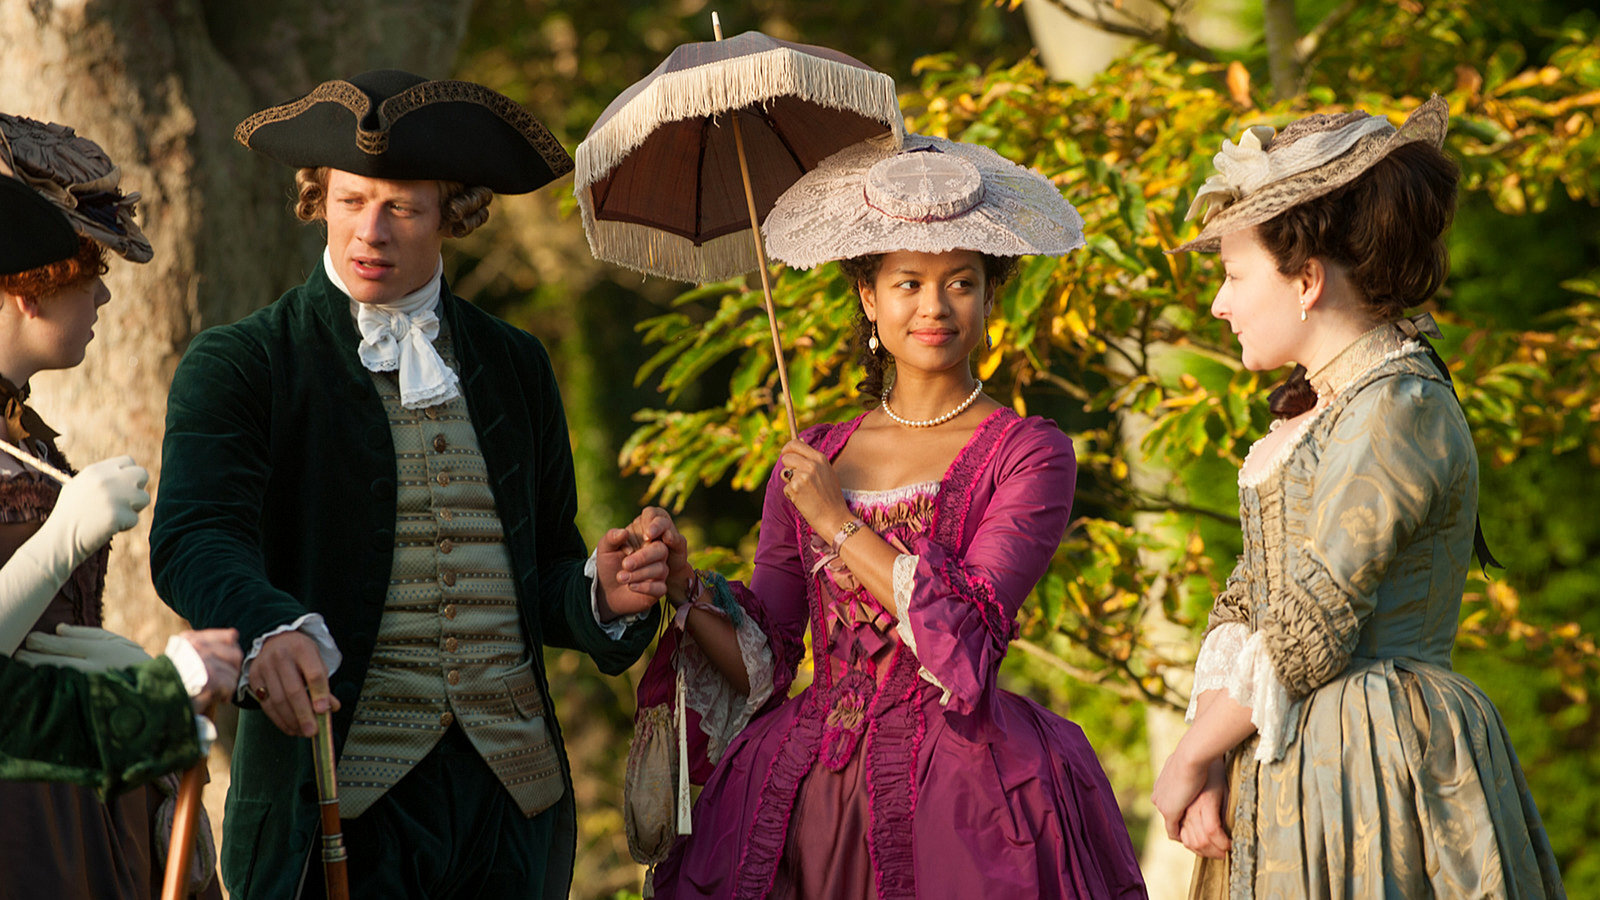 """Belle tells the story of Dido Elizabeth Belle, a mixed-race heiress, born in slavery but brought up in the world of the British aristocracy and is directed by Amma Asante who was inspired to make the film after seeing the portrait of 'Belle' and her white cousin, Lady Elizabeth Murray, seemingly painted as equals. Asante recalled """"This painting flipped tradition and everything the 18th century told us about portraiture. What I saw was an opportunity to tell a story that would combine art history and politics."""" While the film charts Belle's ascendancy to the aristocracy, it is also evident that Belle's material wealth and status created a facade of equality. In reality Belle's mixed-racial identity led to feelings of discontent and dislocation :- """"I am too high to eat with the servants, too low to join you at dinner,"""" Belle, played by Gugu Mbatha-Raw, tells Tom Wilkinson as the Earl of Mansfield. Belle was trapped between worlds, and not wholly welcome in either. The real-life Belle had a happy ending, was married, and was much loved by her family with the Earl of Mansfield leaving her a large portion of his will."""